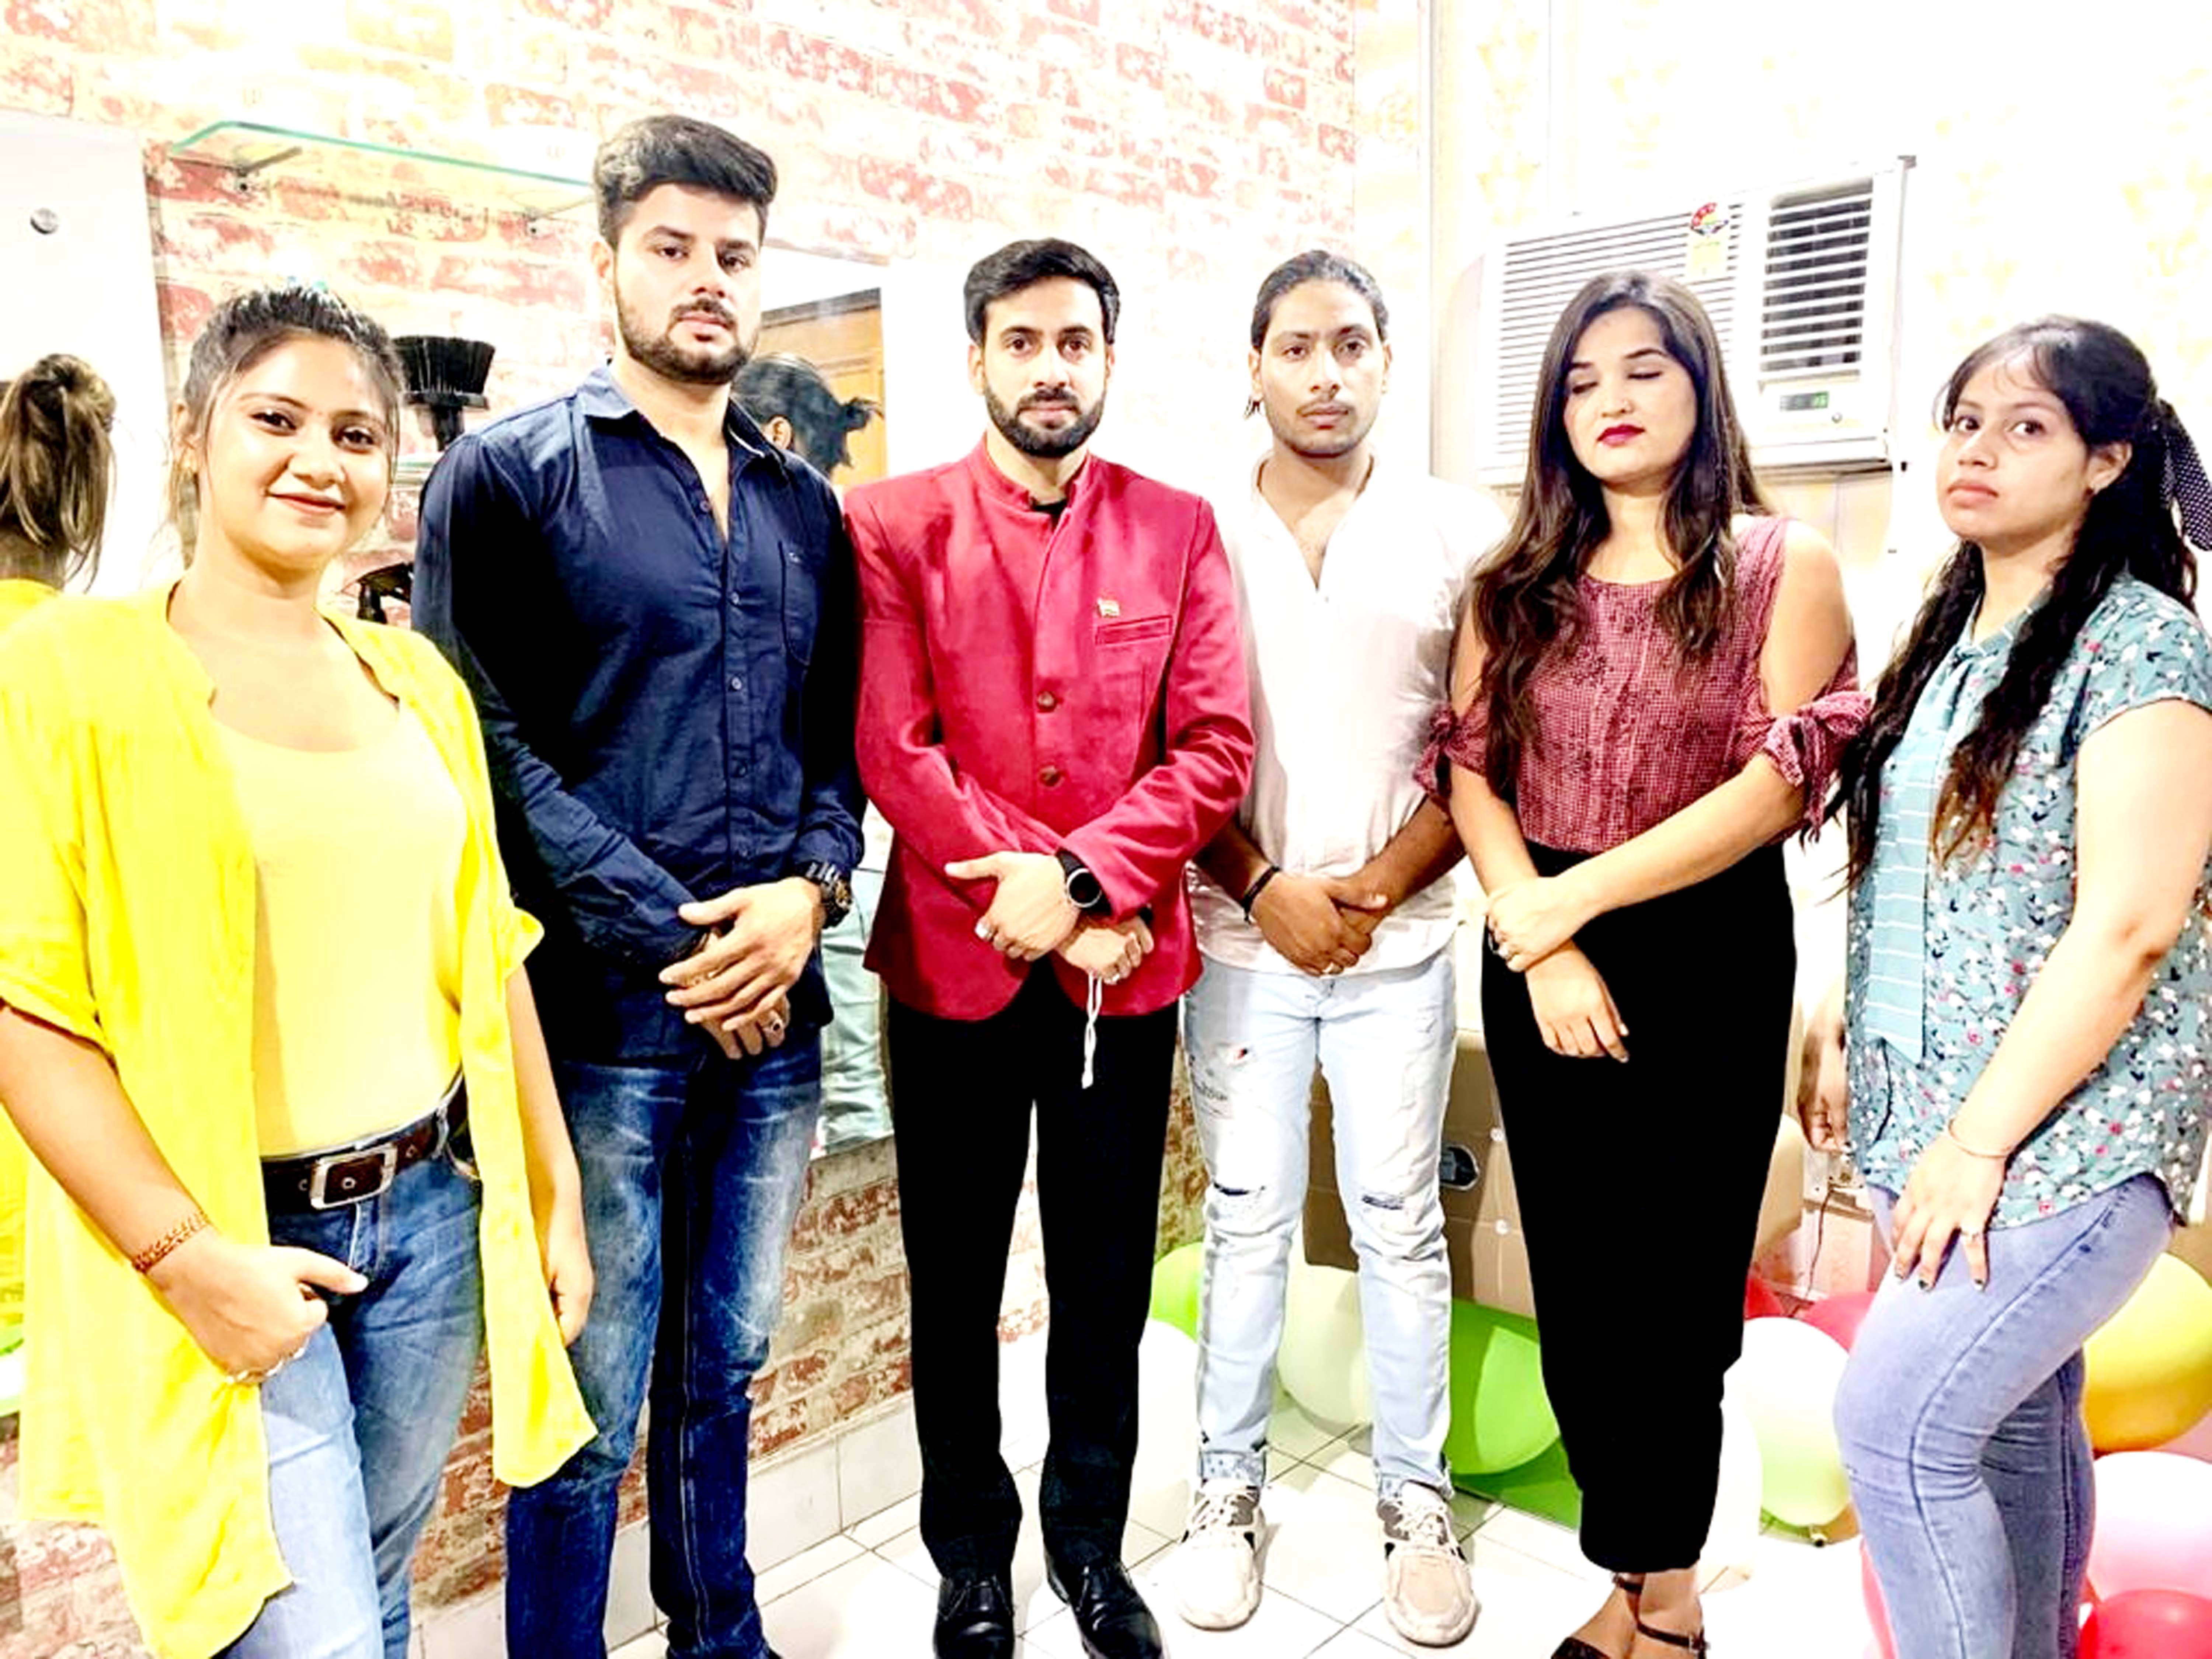 Chairperson Nirbhay Bharat Foundation Tarun Uppal during inauguration of Makeover Studio at Digiana on Monday.